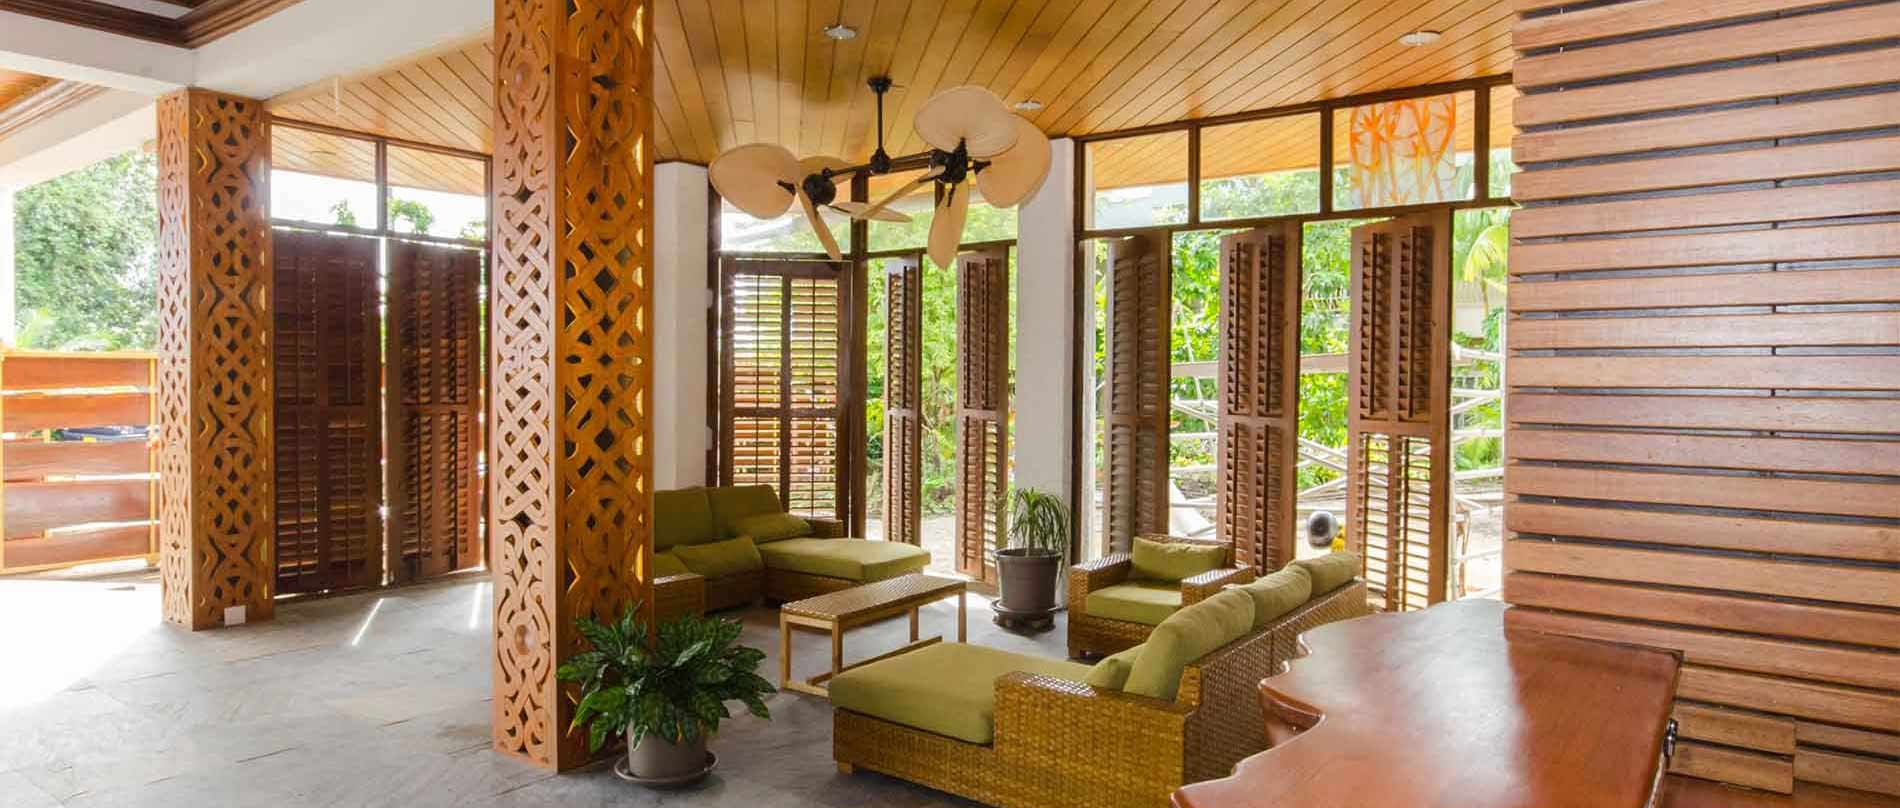 Jacana Amazon Wellness Resort Suriname Hotel Lobby